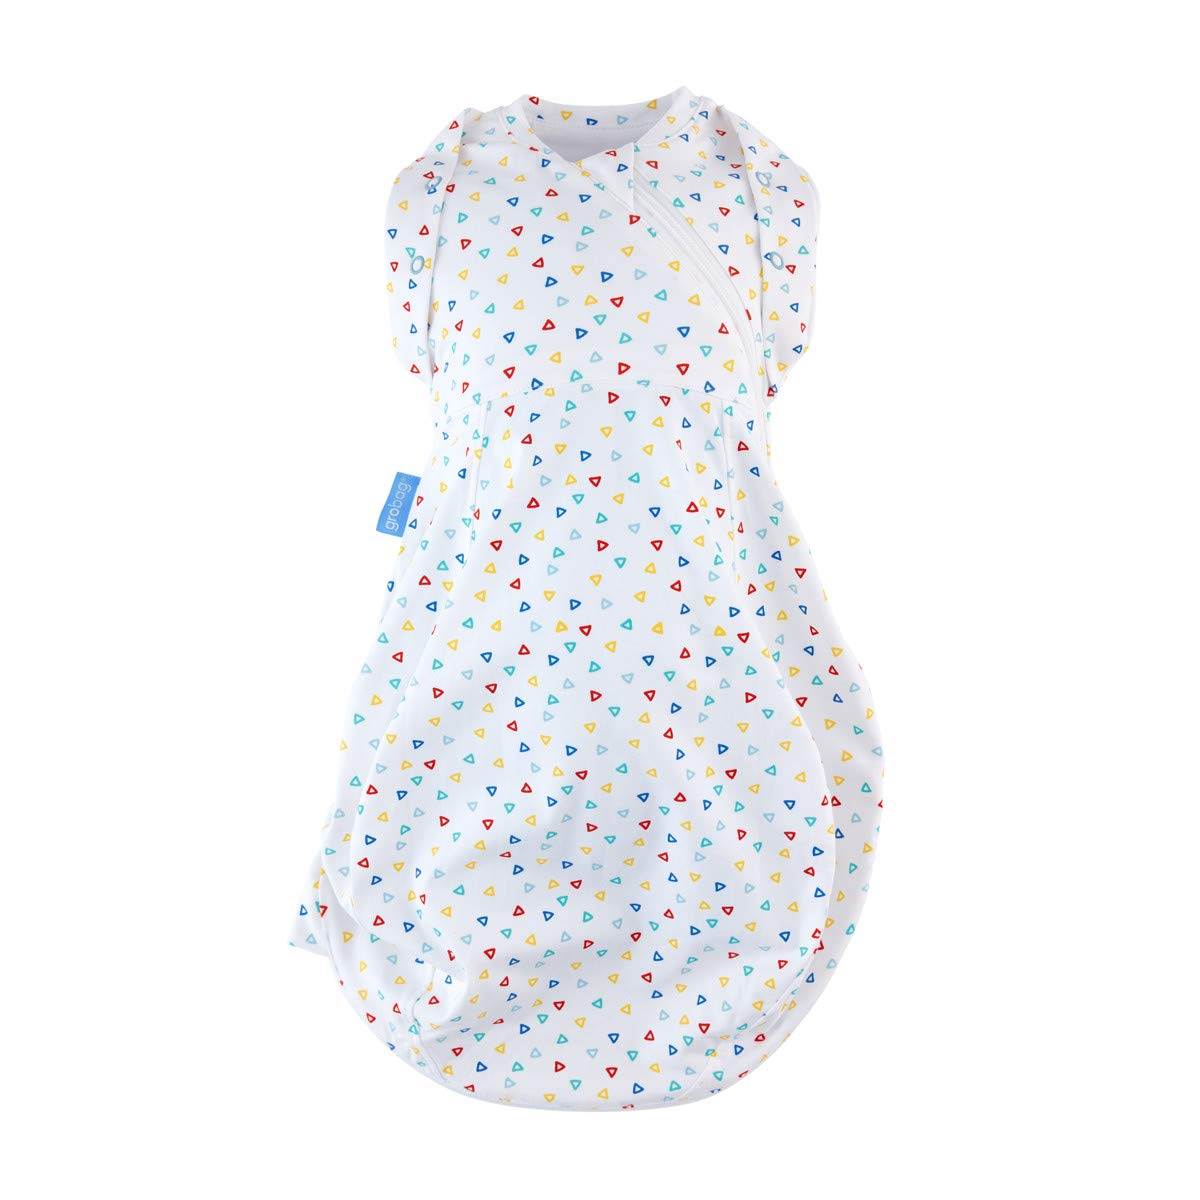 BRAND NEW Gro Snug Talking Turtles 2-in-1 Swaddle and Grobag stars dots Newborn